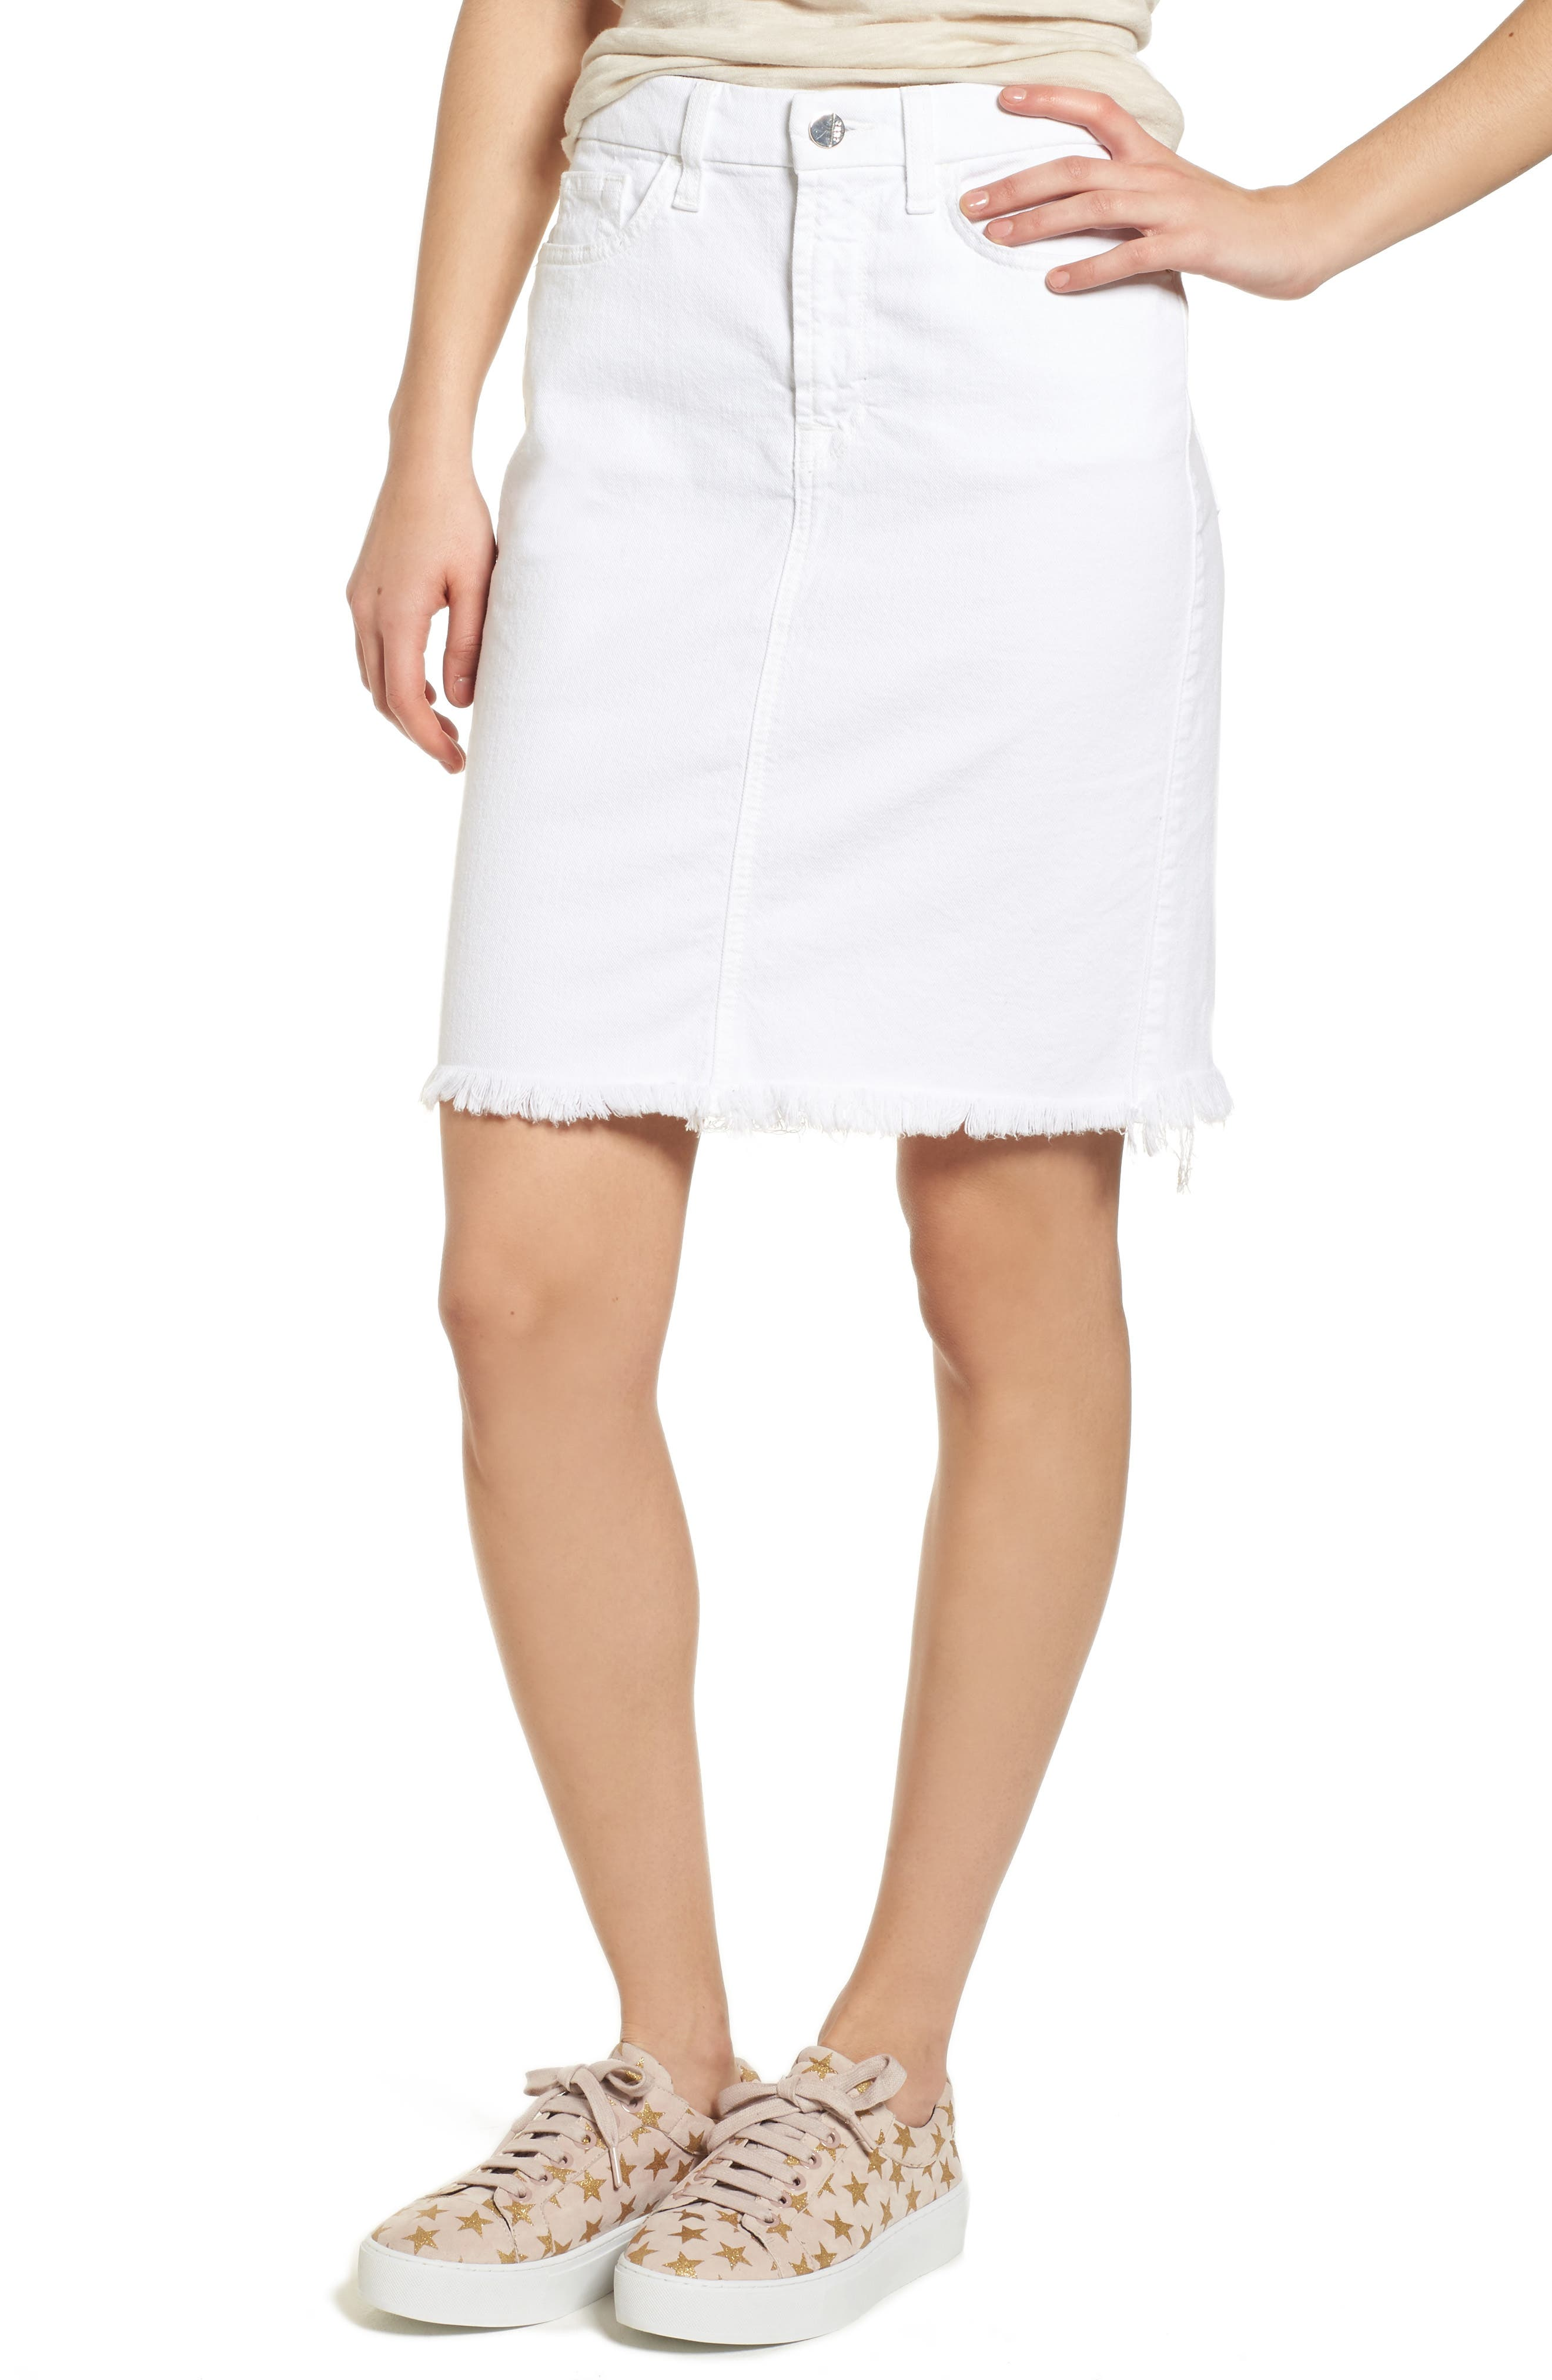 JEN7 Denim Pencil Skirt W/ Frayed Hem in White Fasion